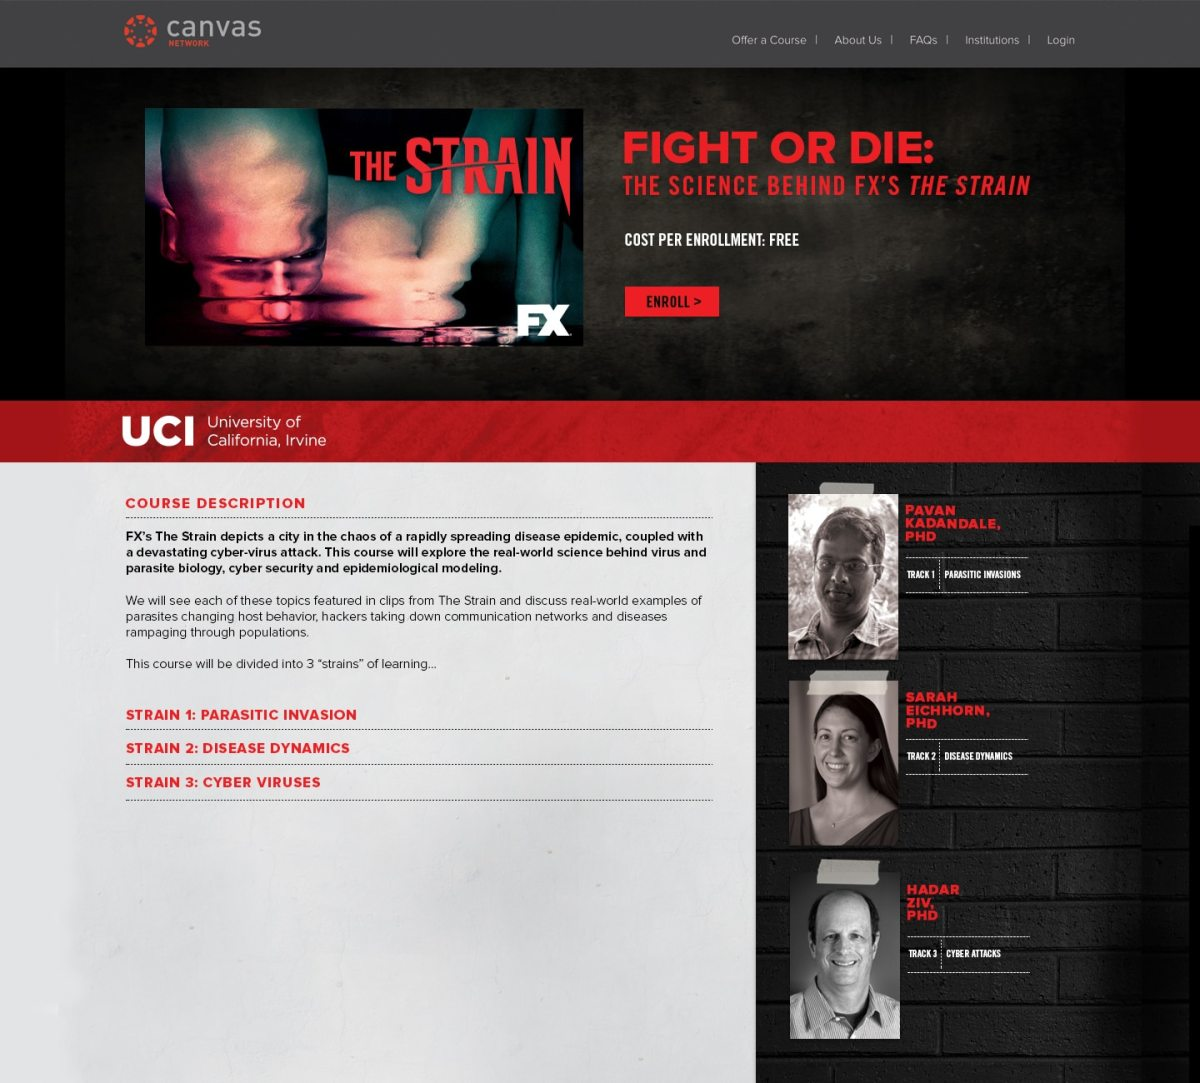 _The Strain_ MOOC registration page